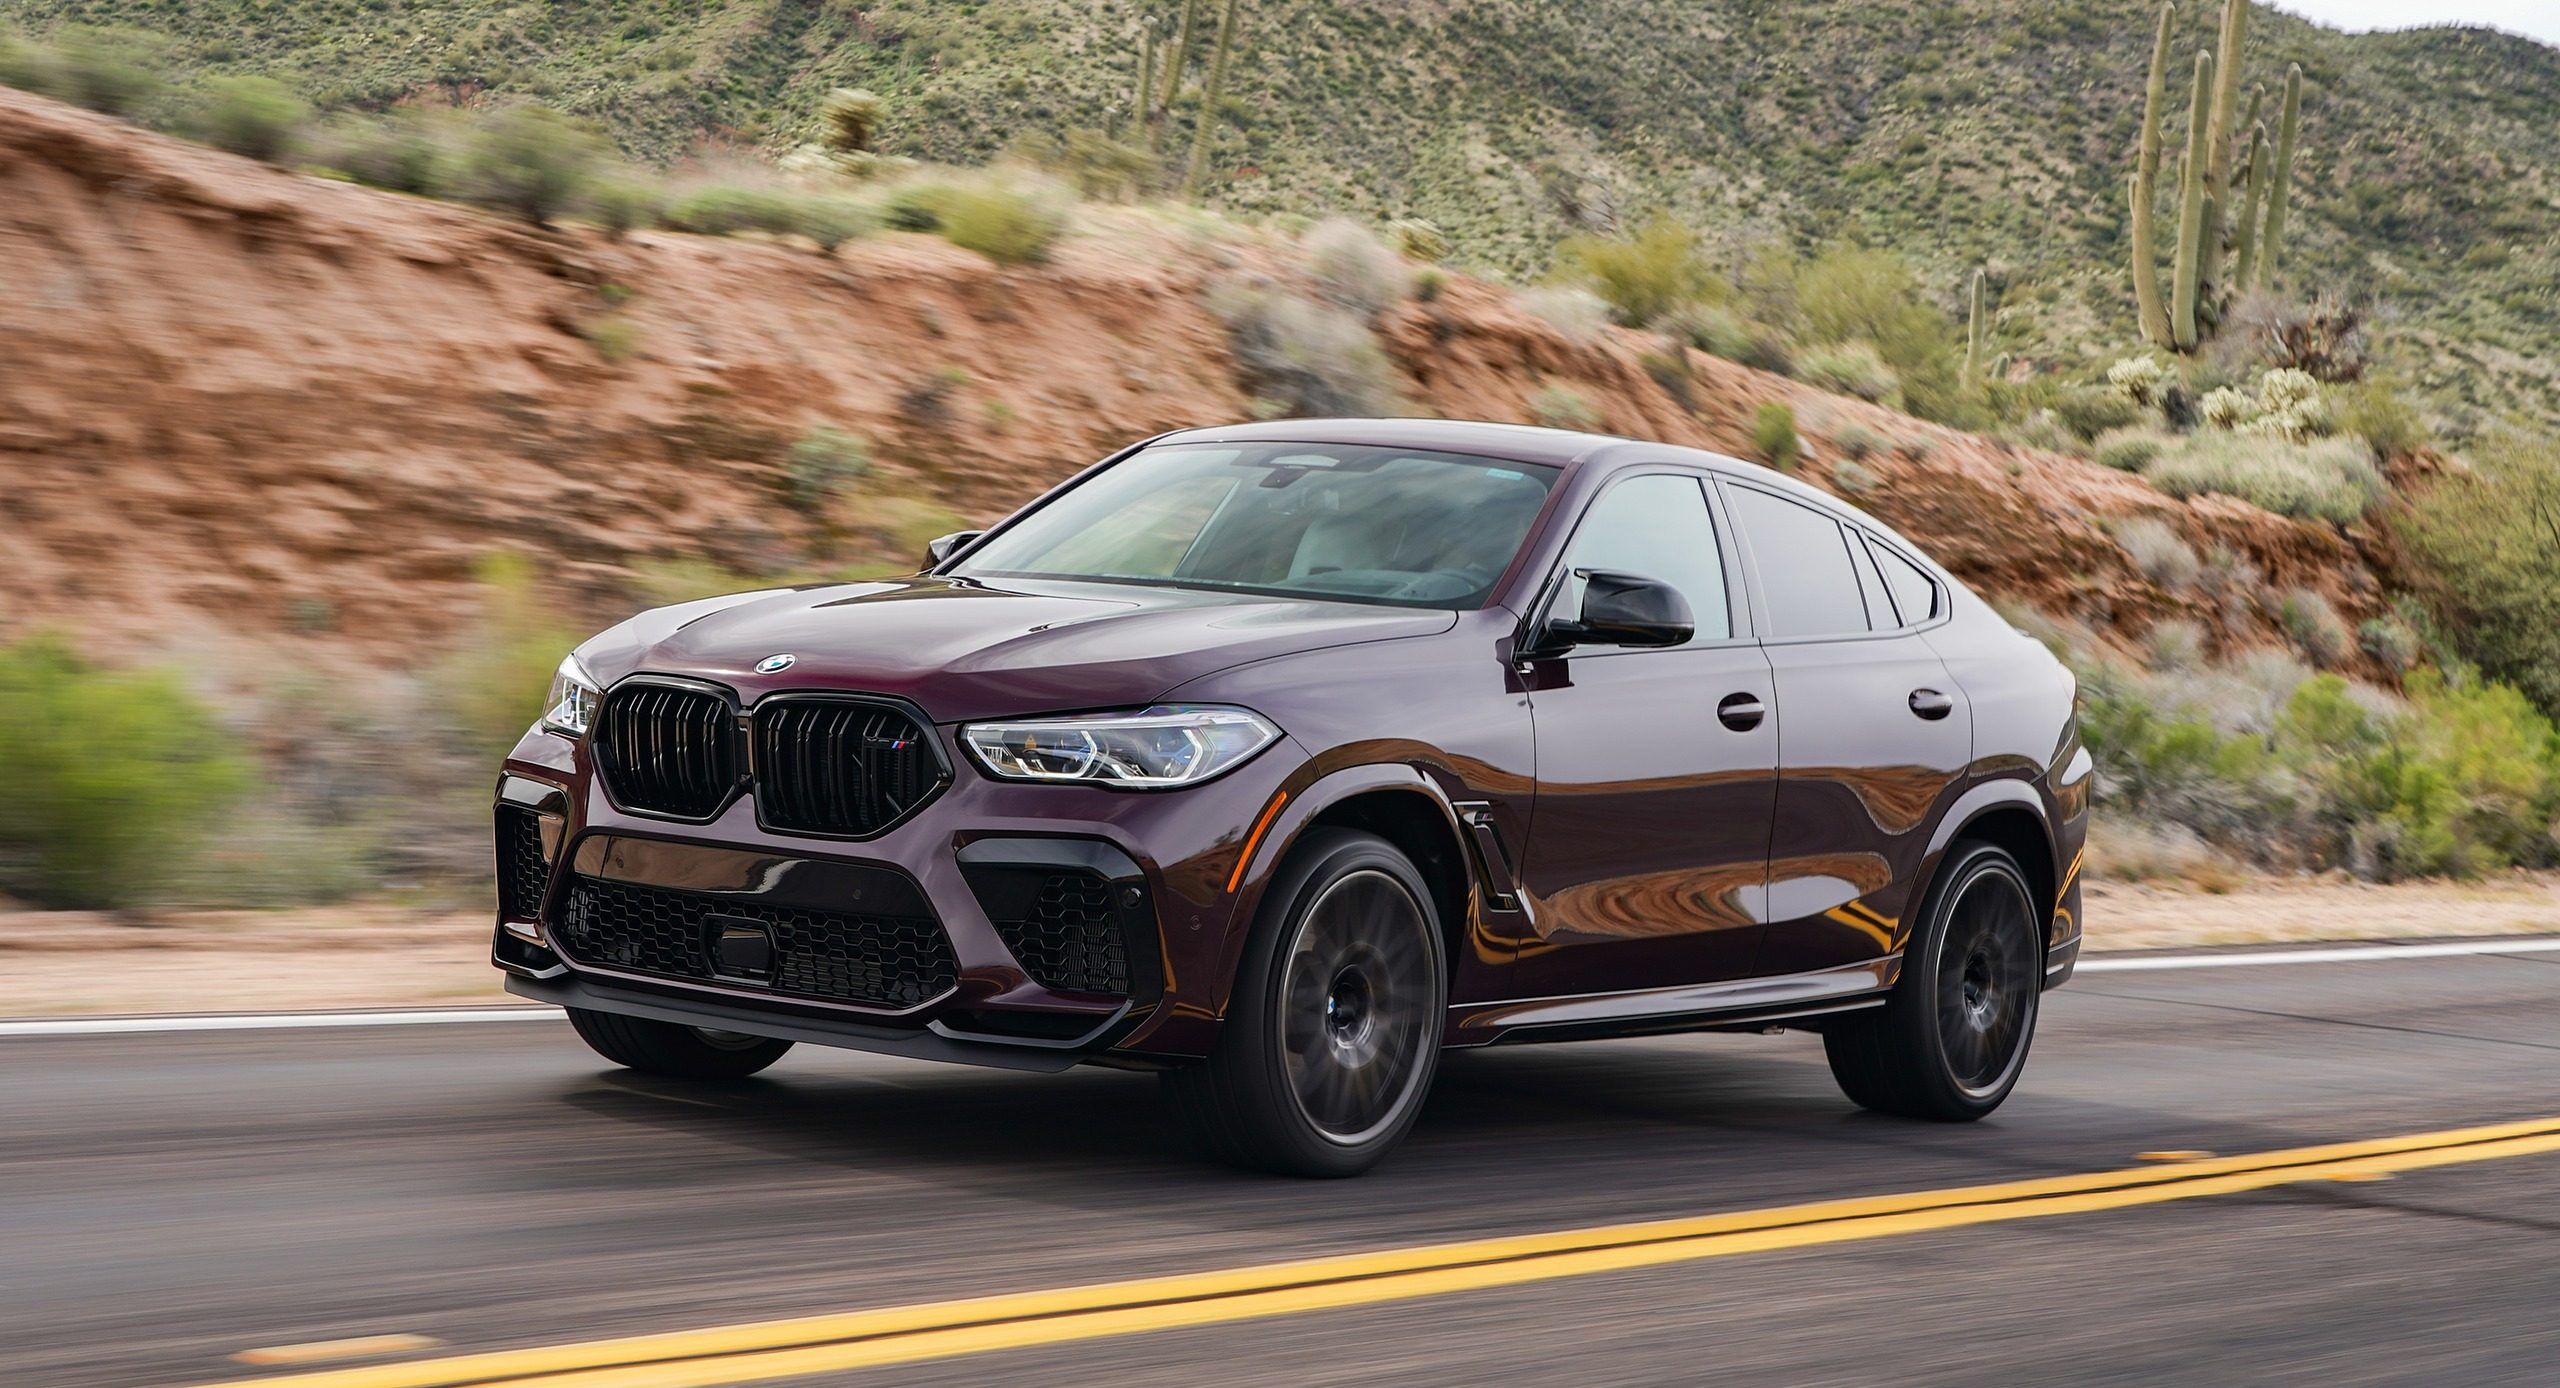 2020 BMW X6 M Competition Wallpapers | SuperCars.net